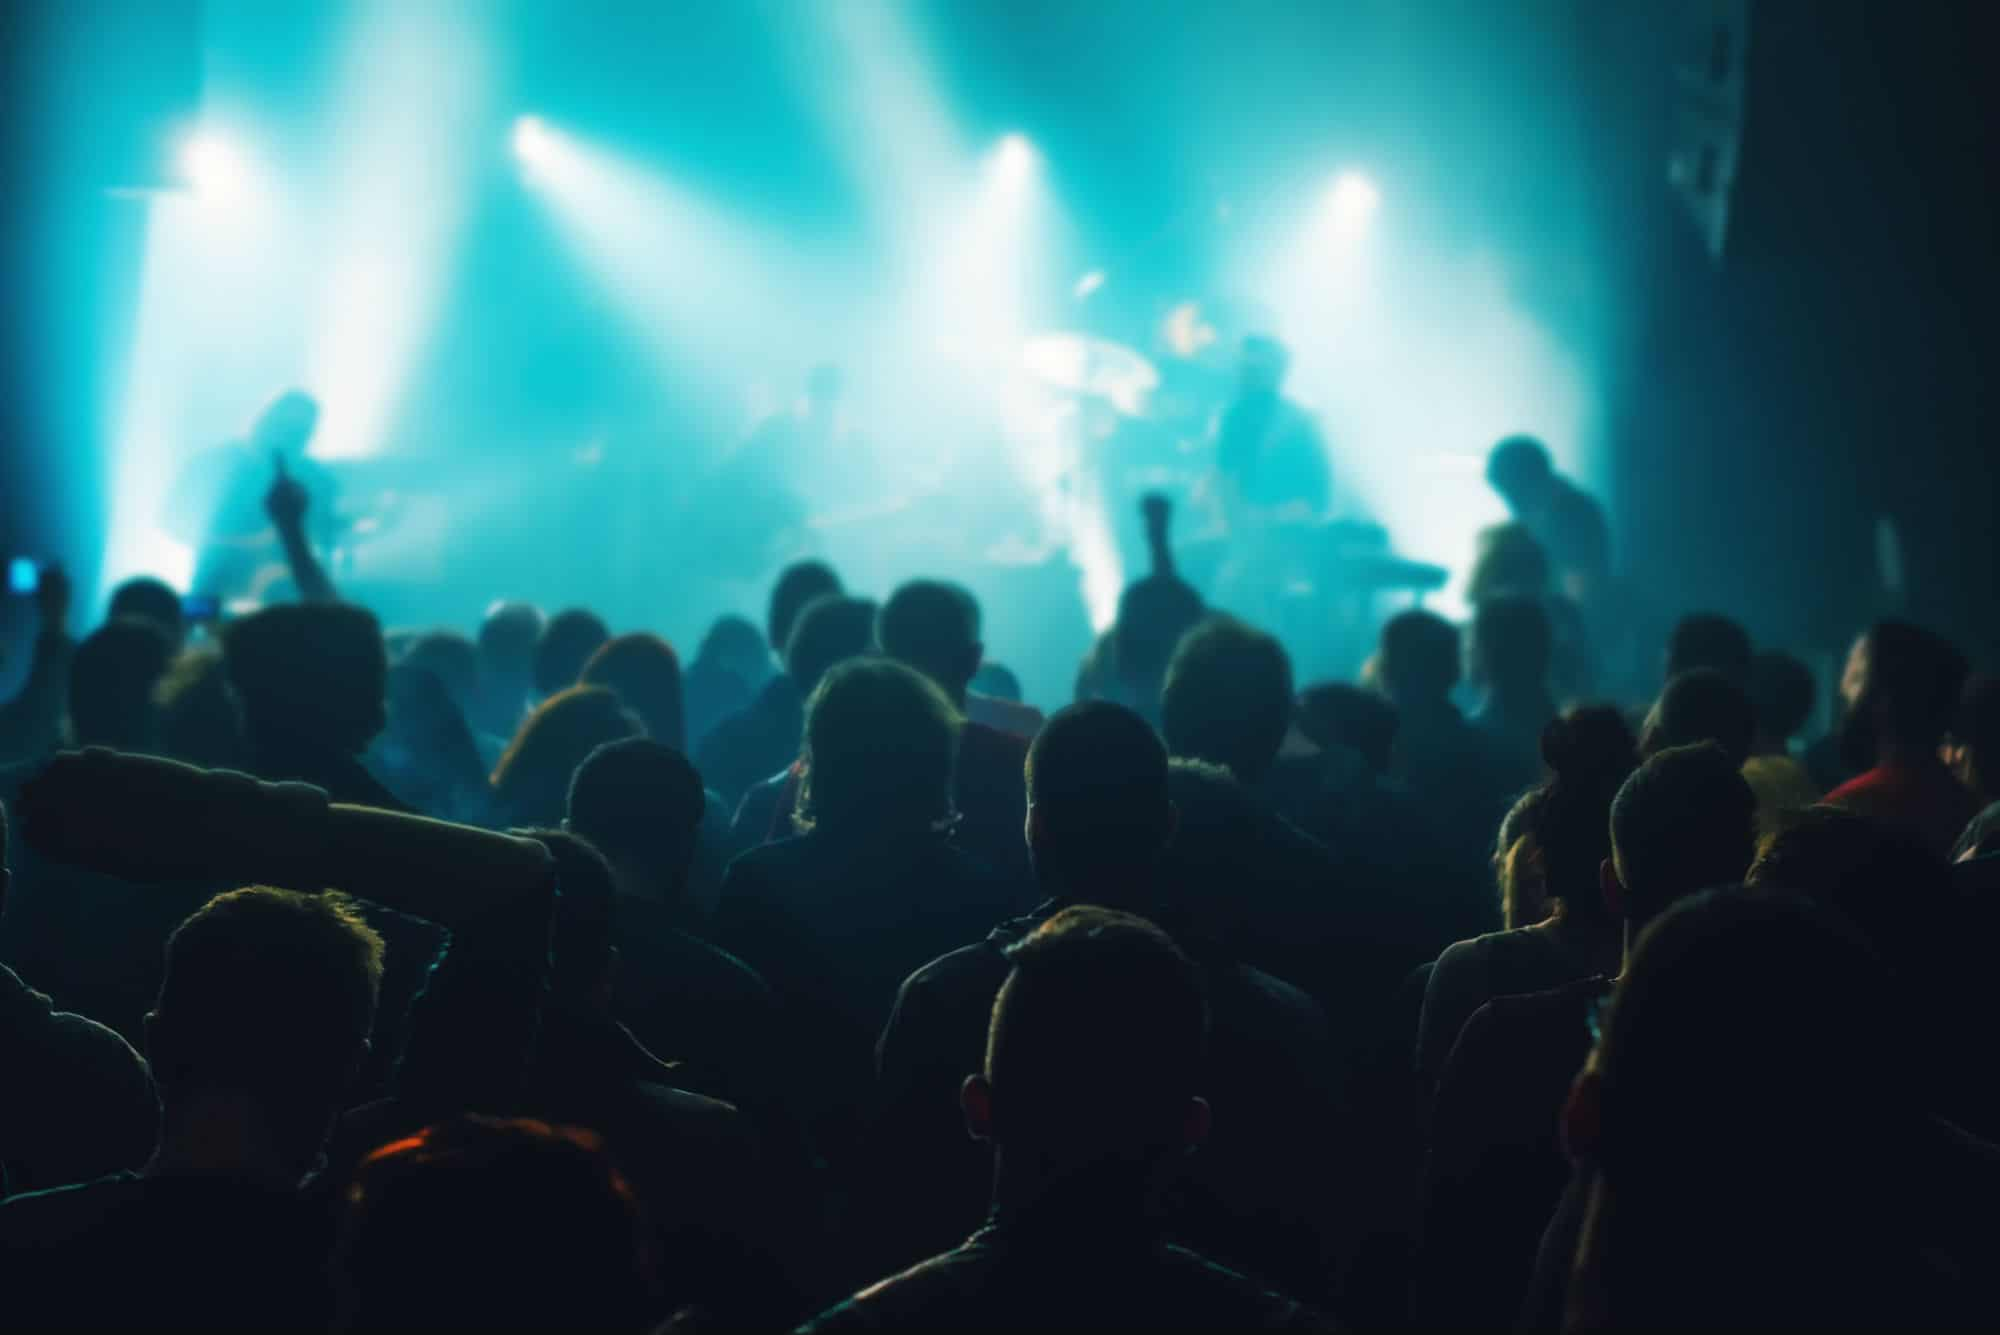 music-concert-crowd-live